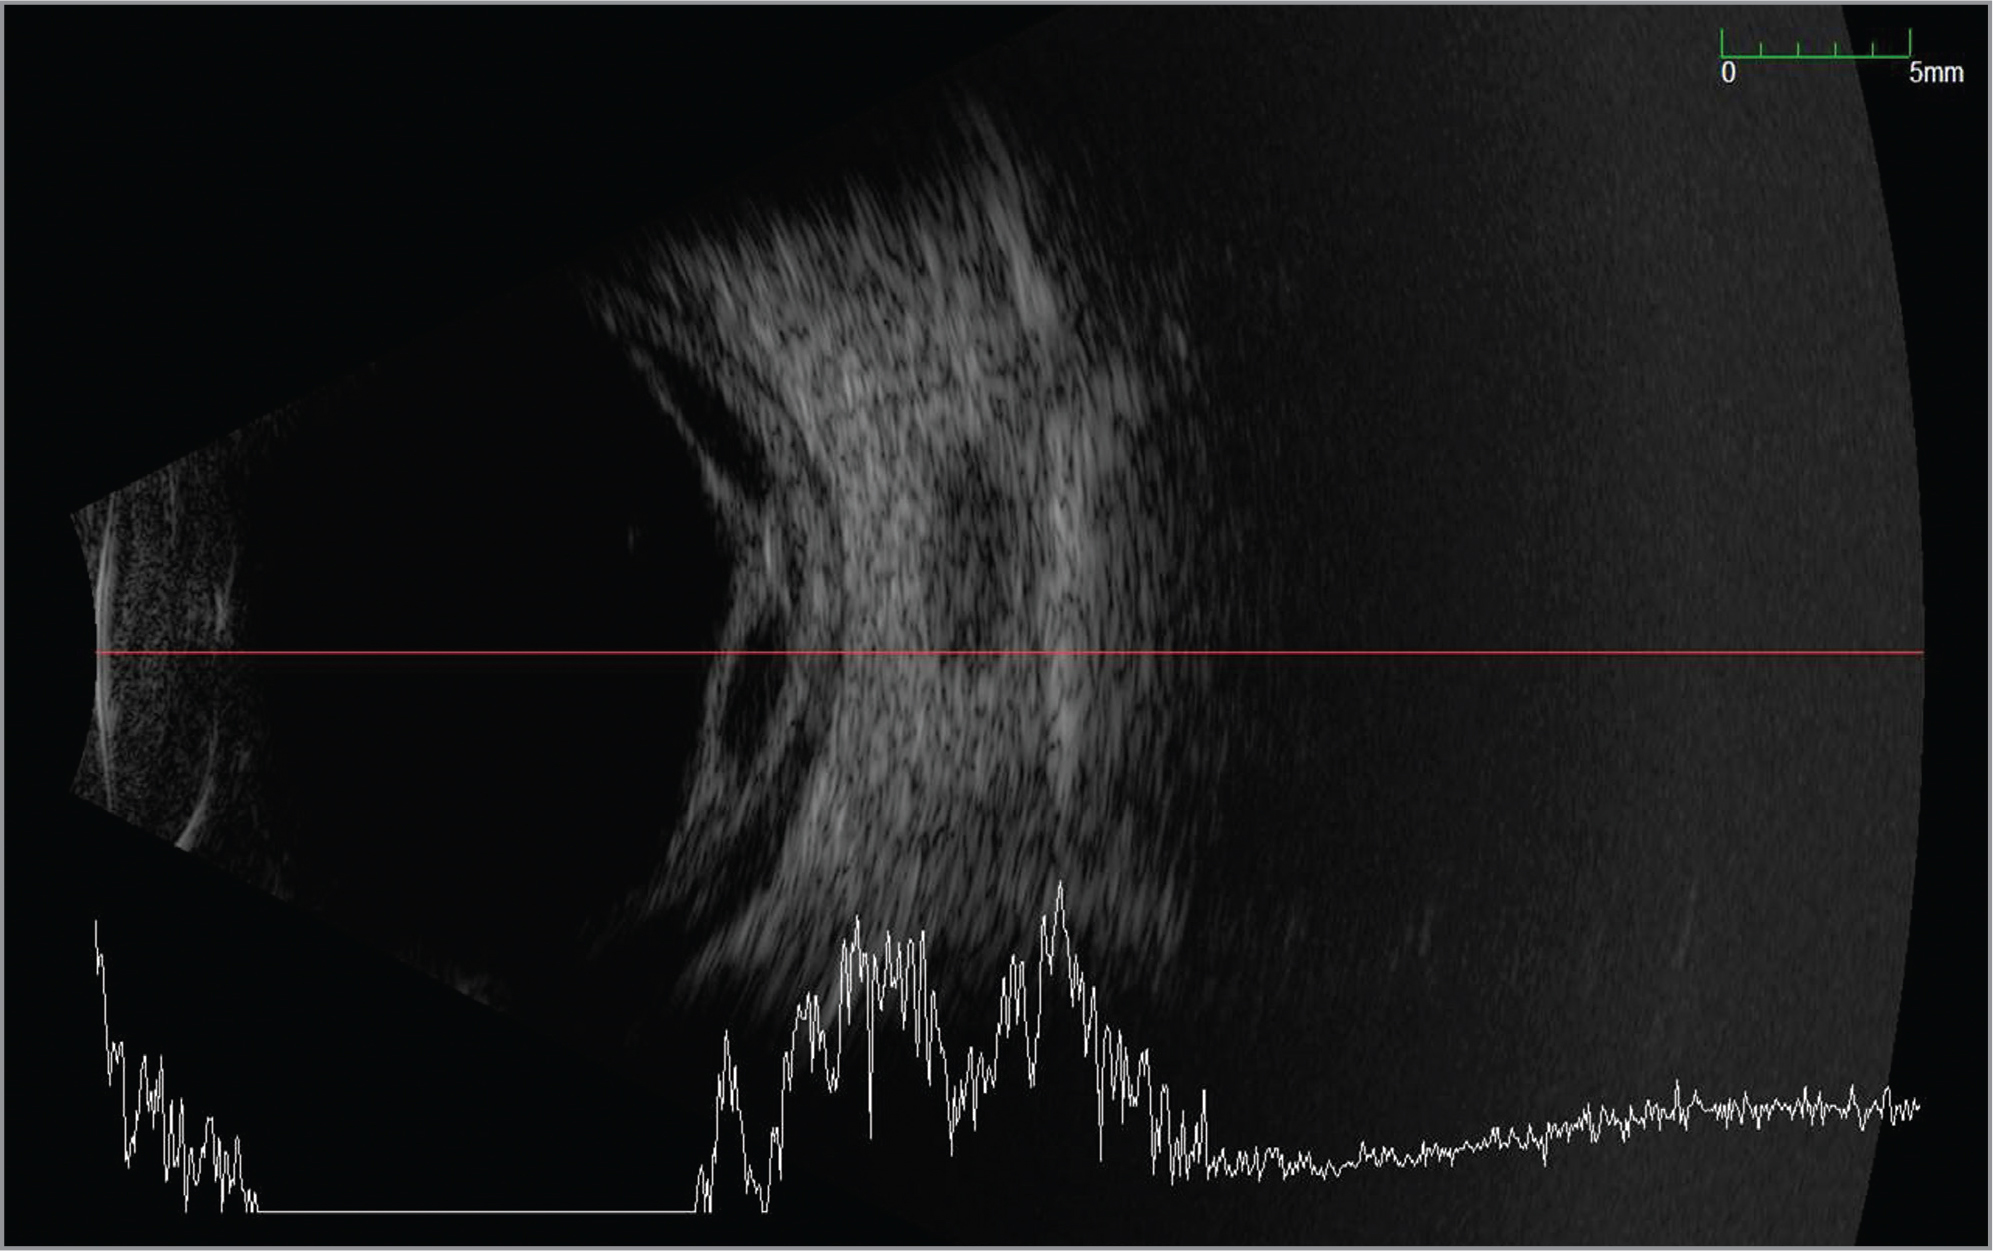 B-scan ultrasonography of the right eye 3 days after bevacizumab injection demonstrating elevation of fibrovascular tissue and choroidal thickening.